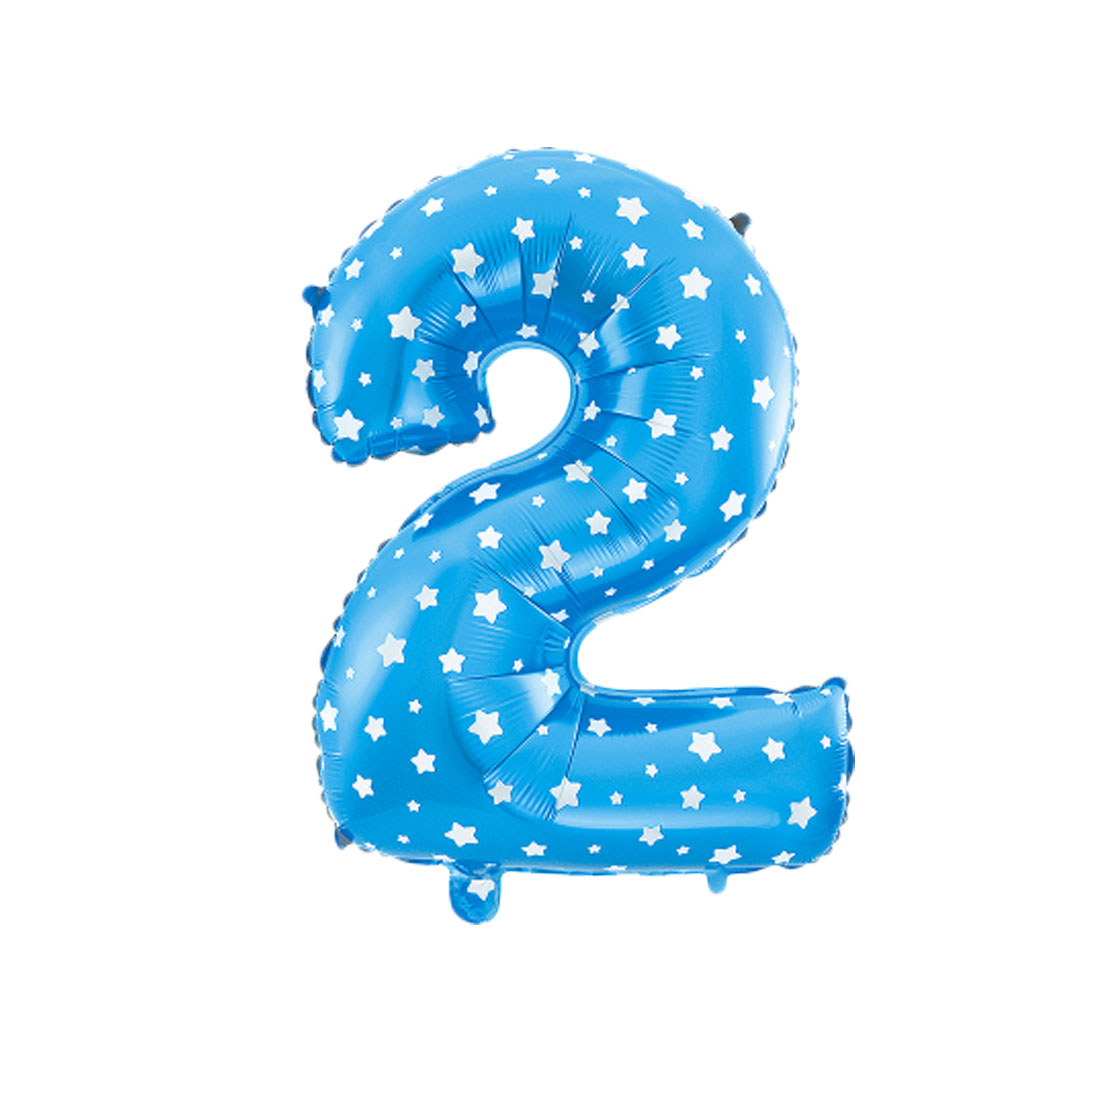 "Unique Bargains 16"" Blue Foil Number 2 Shape Balloon Helium Birthday Wedding Decor"